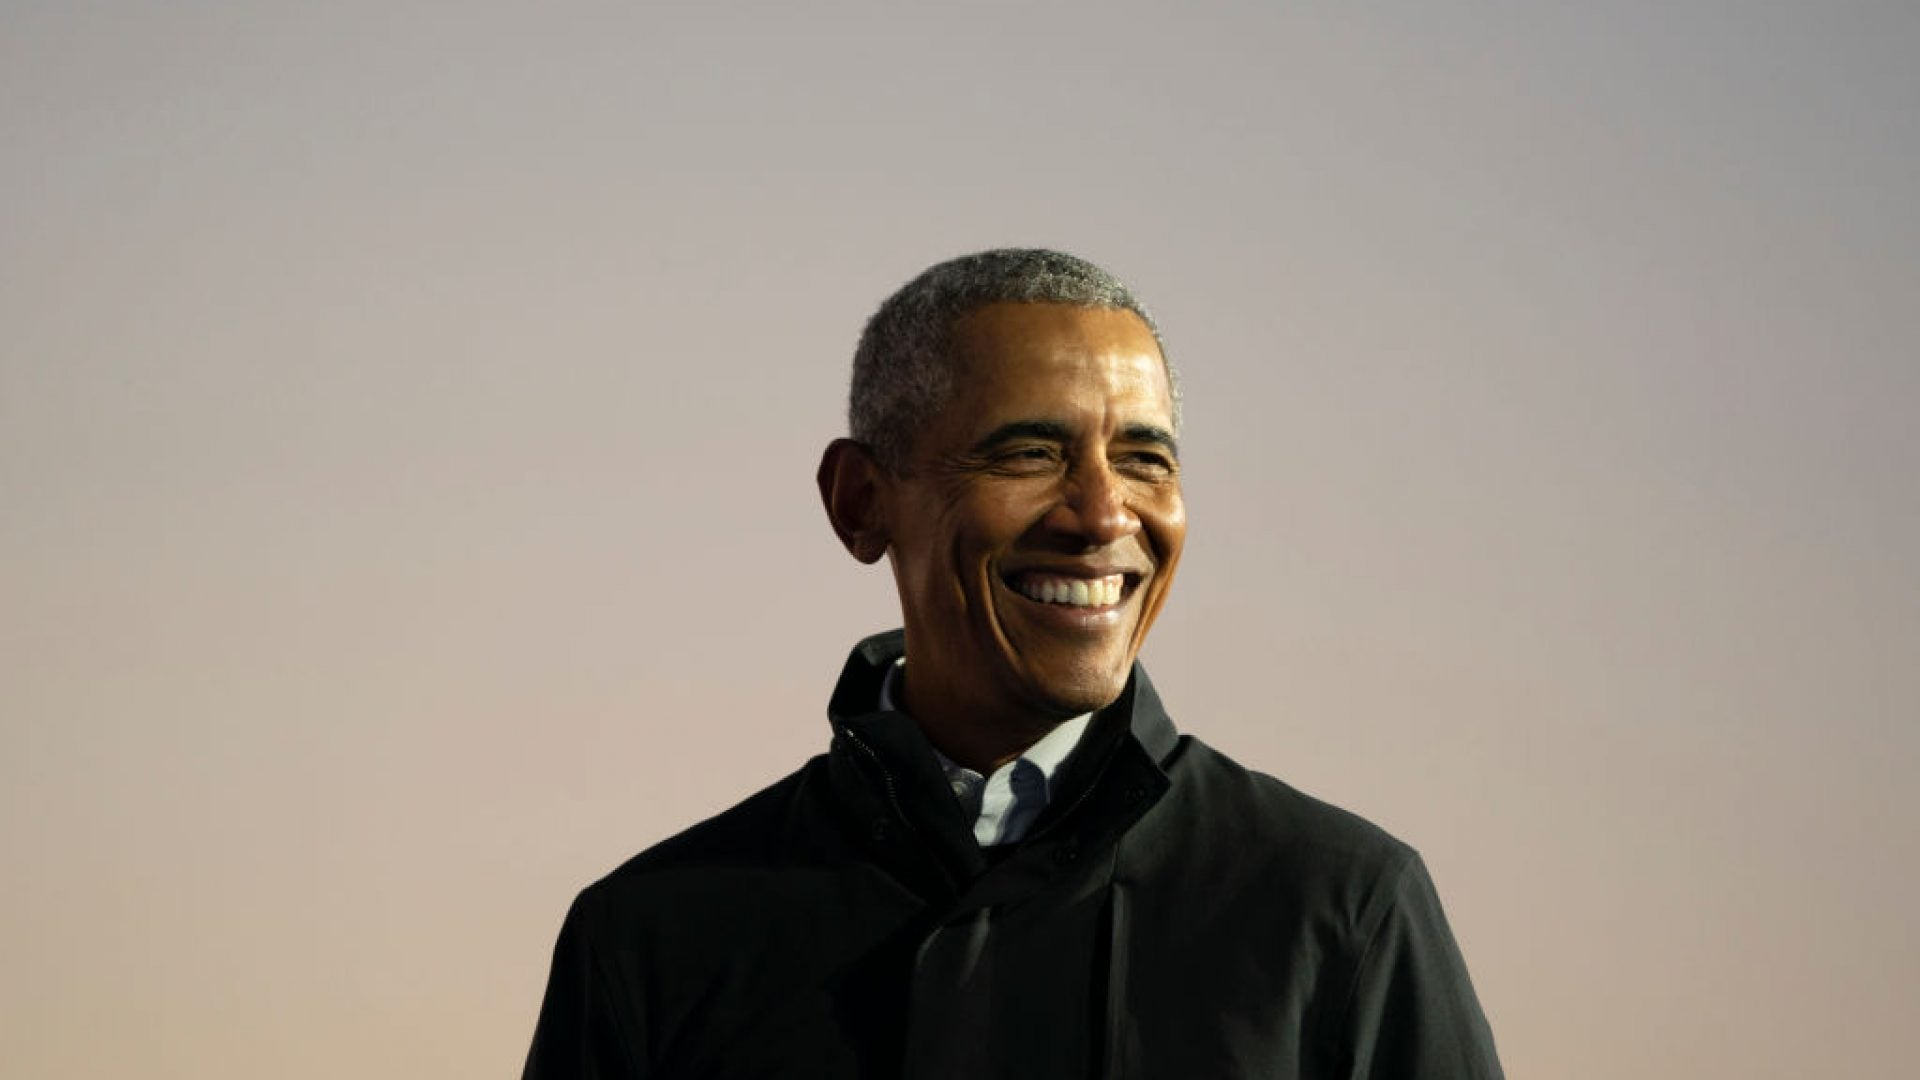 Barack Obama's 'A Promised Land' Playlist Includes Songs That Inspired Him During His Presidency